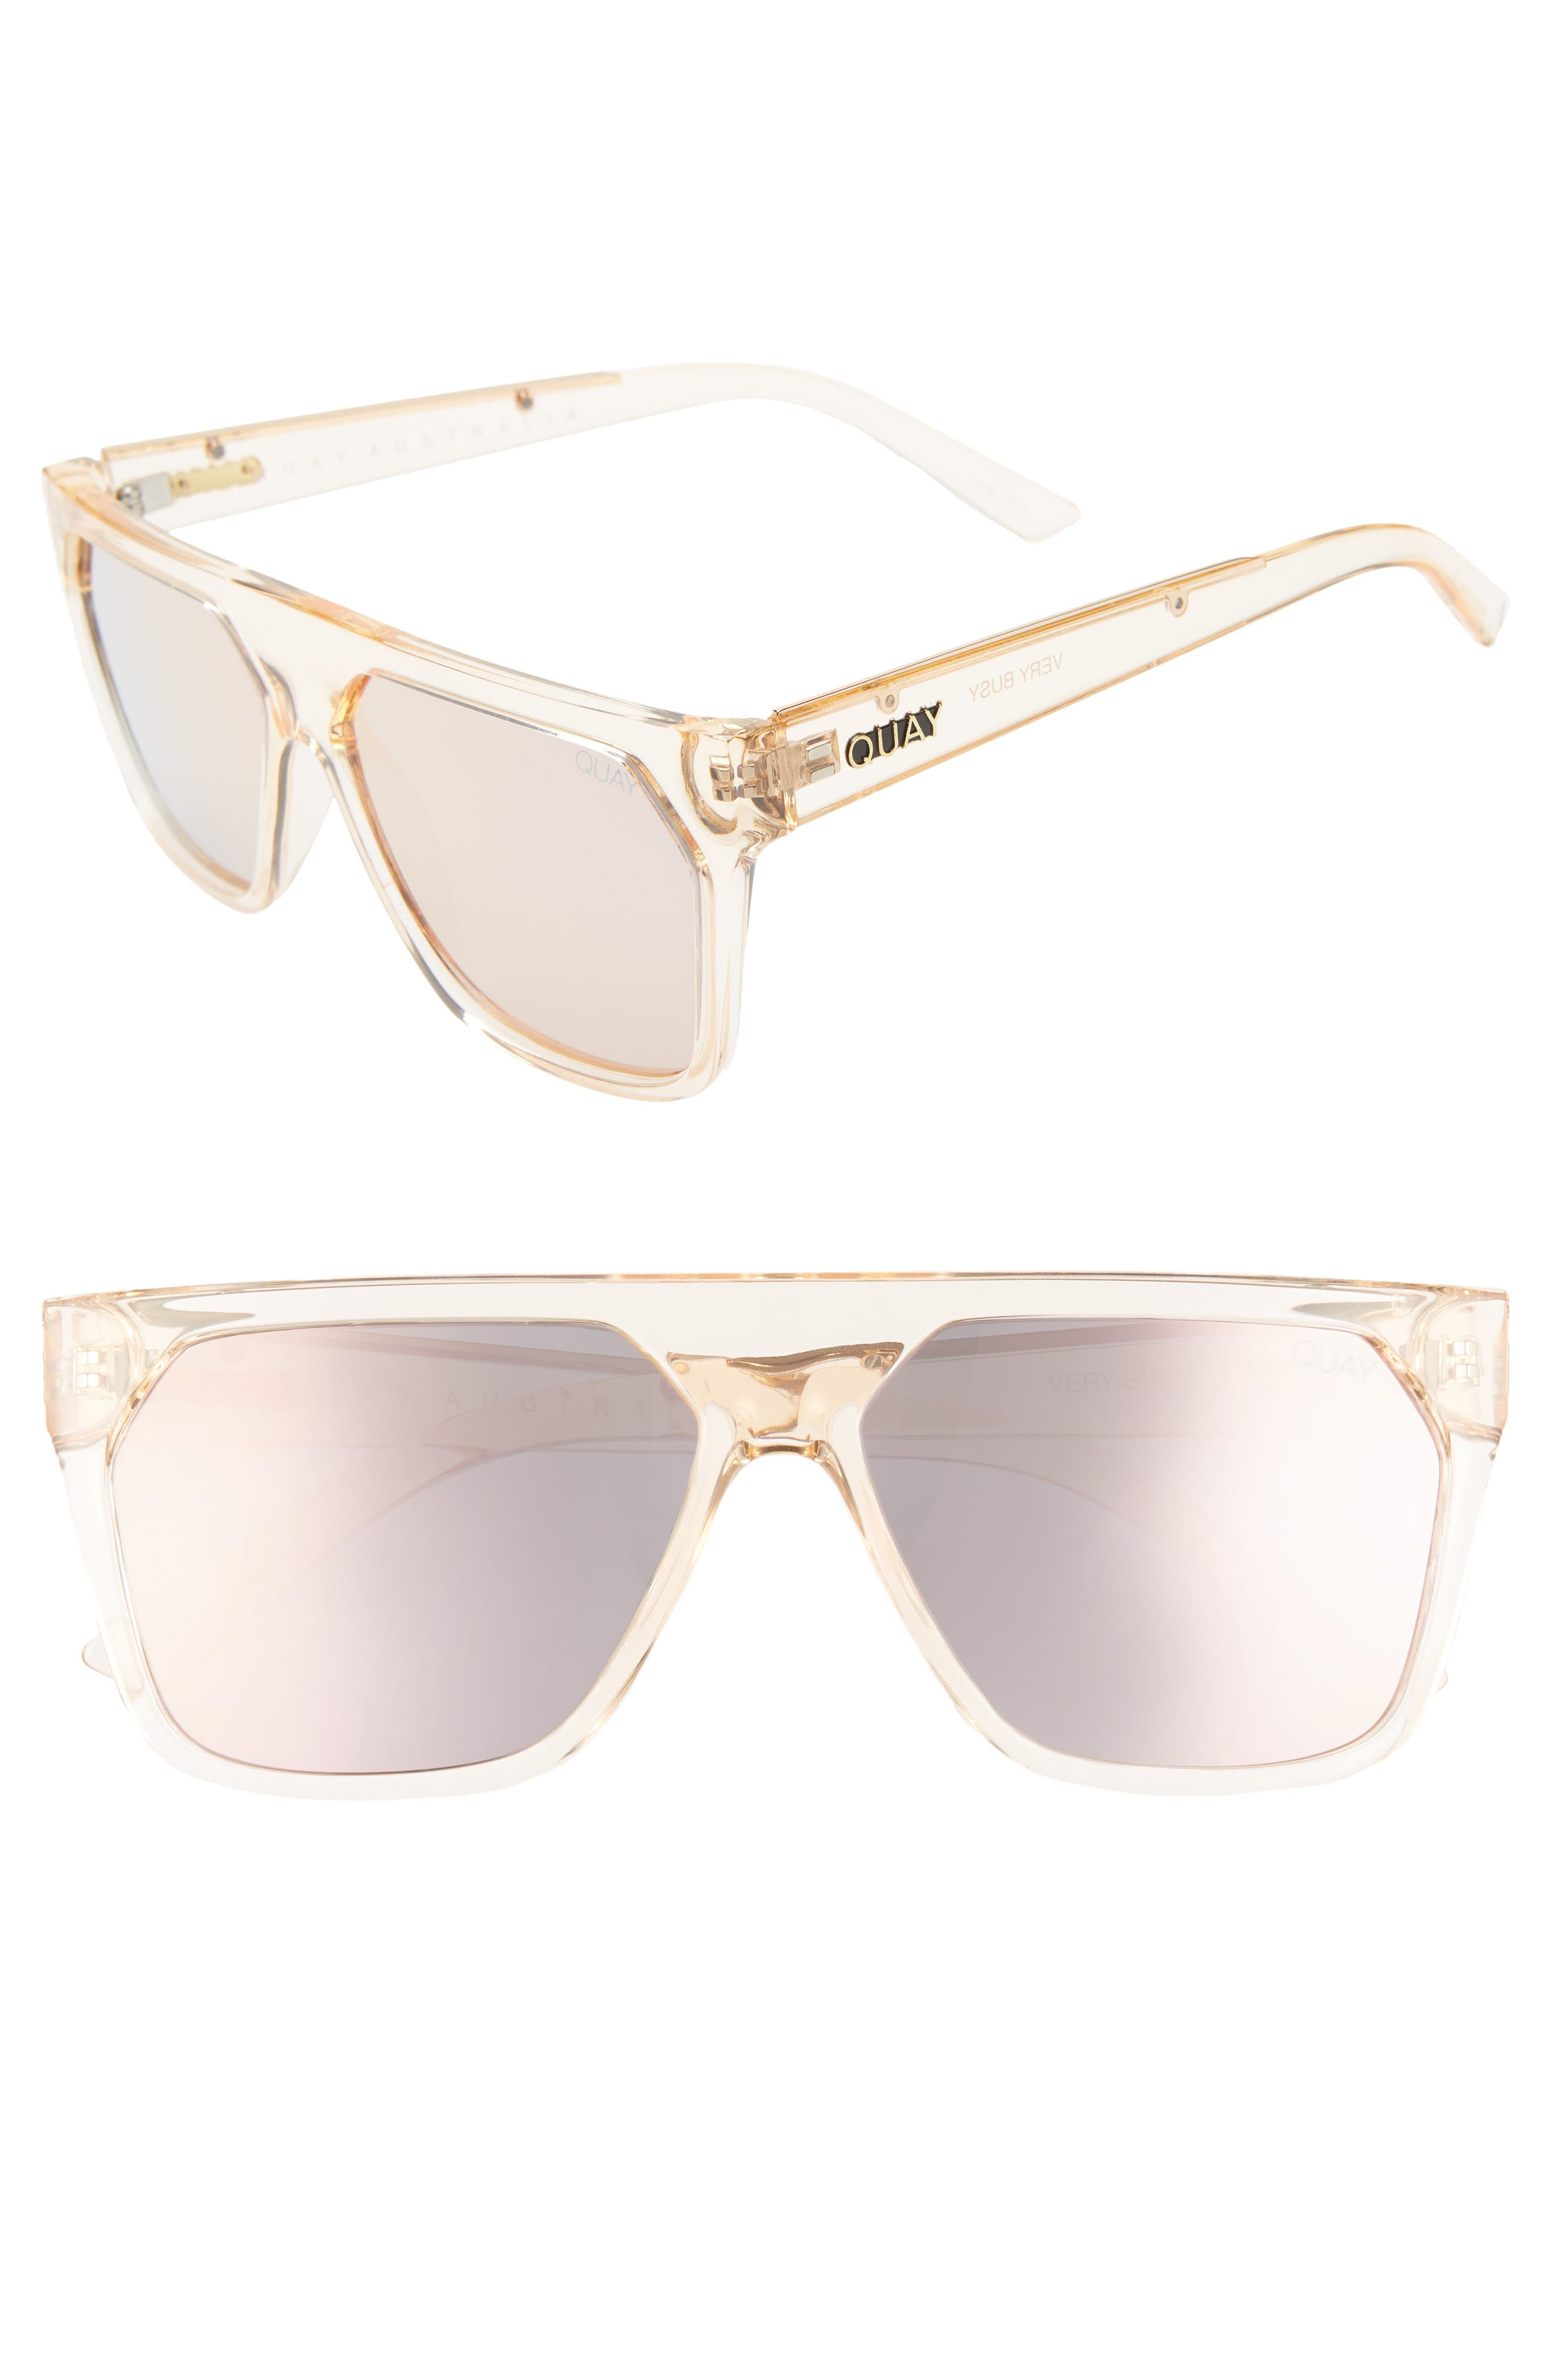 QUAY AUSTRALIA x Jaclyn Hill Very Busy 58mm Shield Sunglasses, Main, color, CHAMPAGNE / ROSE